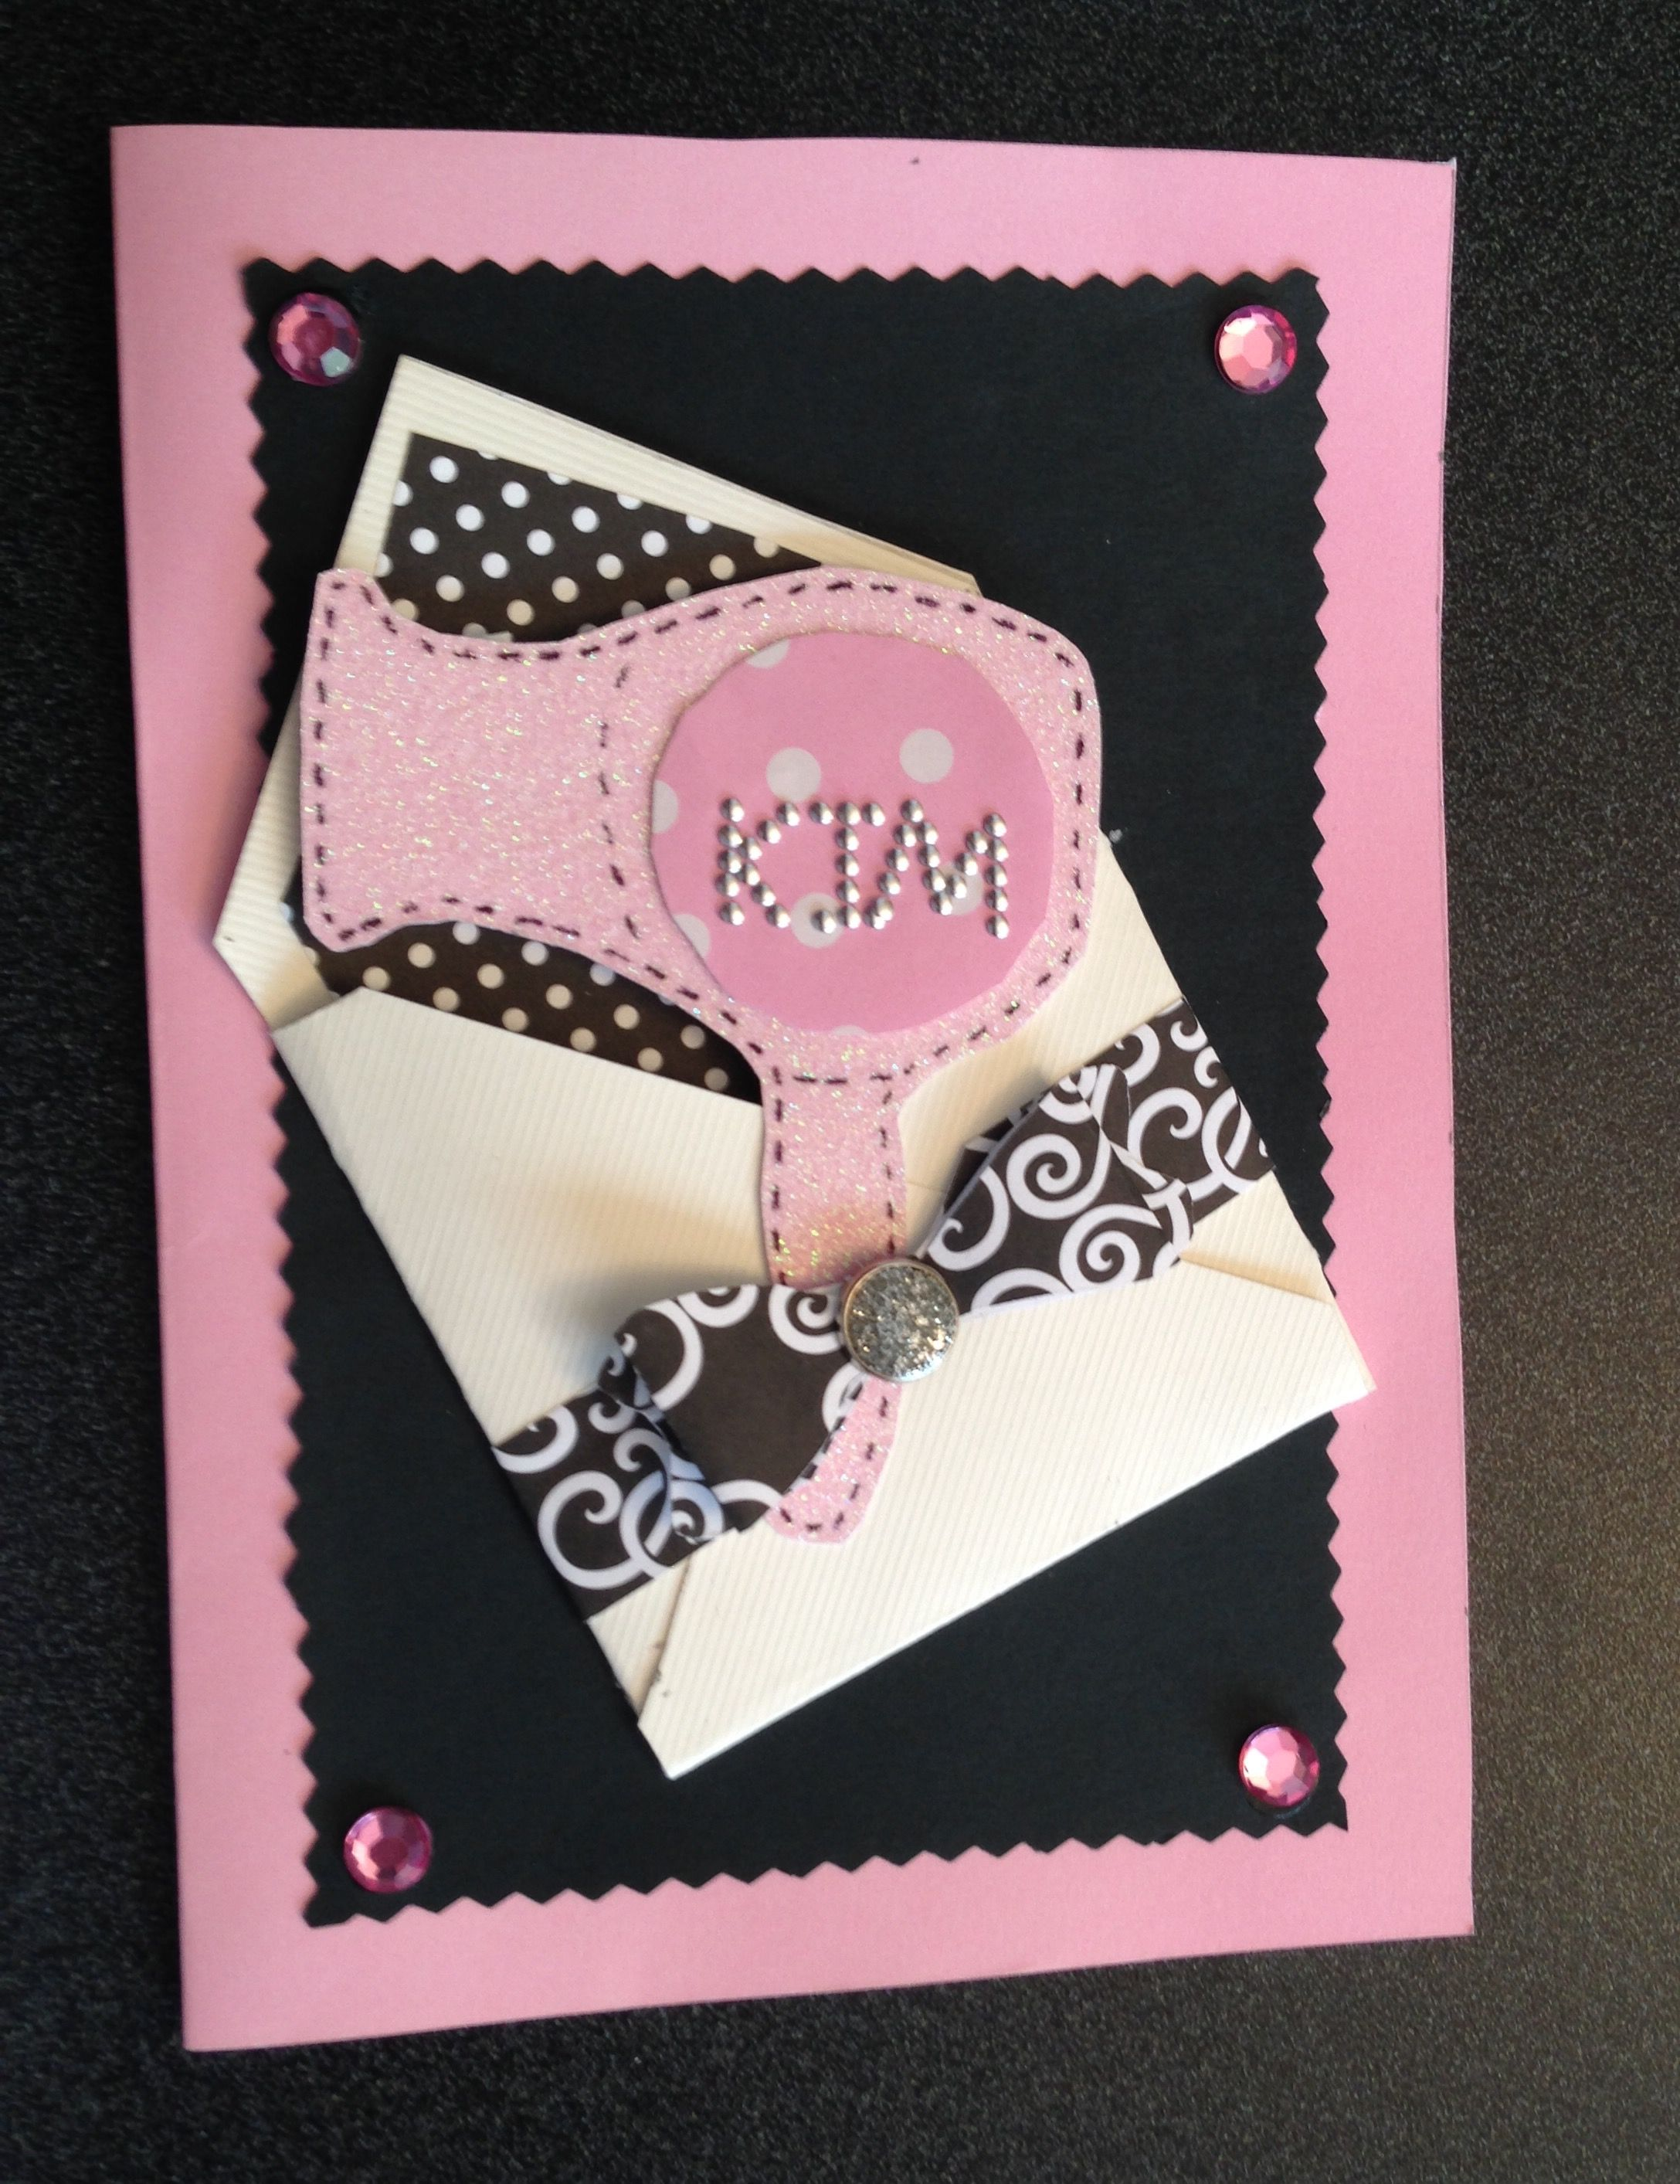 Custom birthday card for a favorite hairdresser it has an envelope custom birthday card for a favorite hairdresser it has an envelope with a blowdryer bookmarktalkfo Images